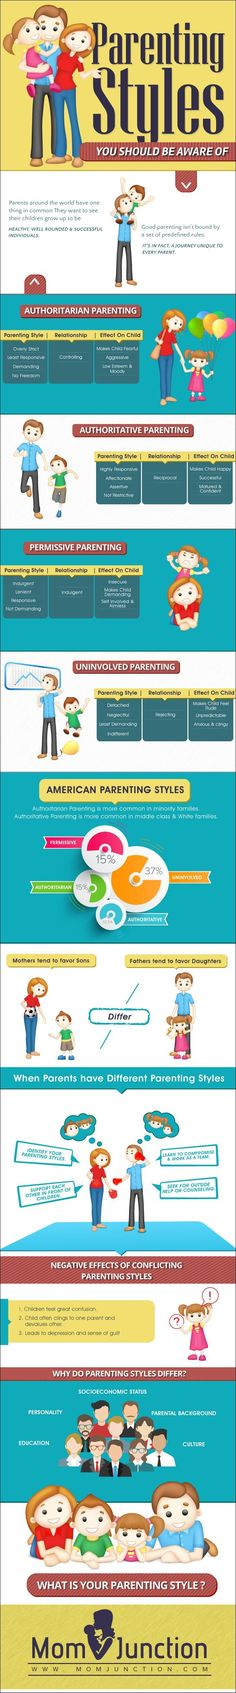 Are you aware that different parenting styles have different impact & influences. - Are you aware that different parenting styles have different impact & influences. Are you aware that different parenting styles have different impac. Parenting Books, Gentle Parenting, Kids And Parenting, Parenting Tips, Parenting Classes, Parenting Quotes, Parenting Magazine, Peaceful Parenting, Foster Parenting